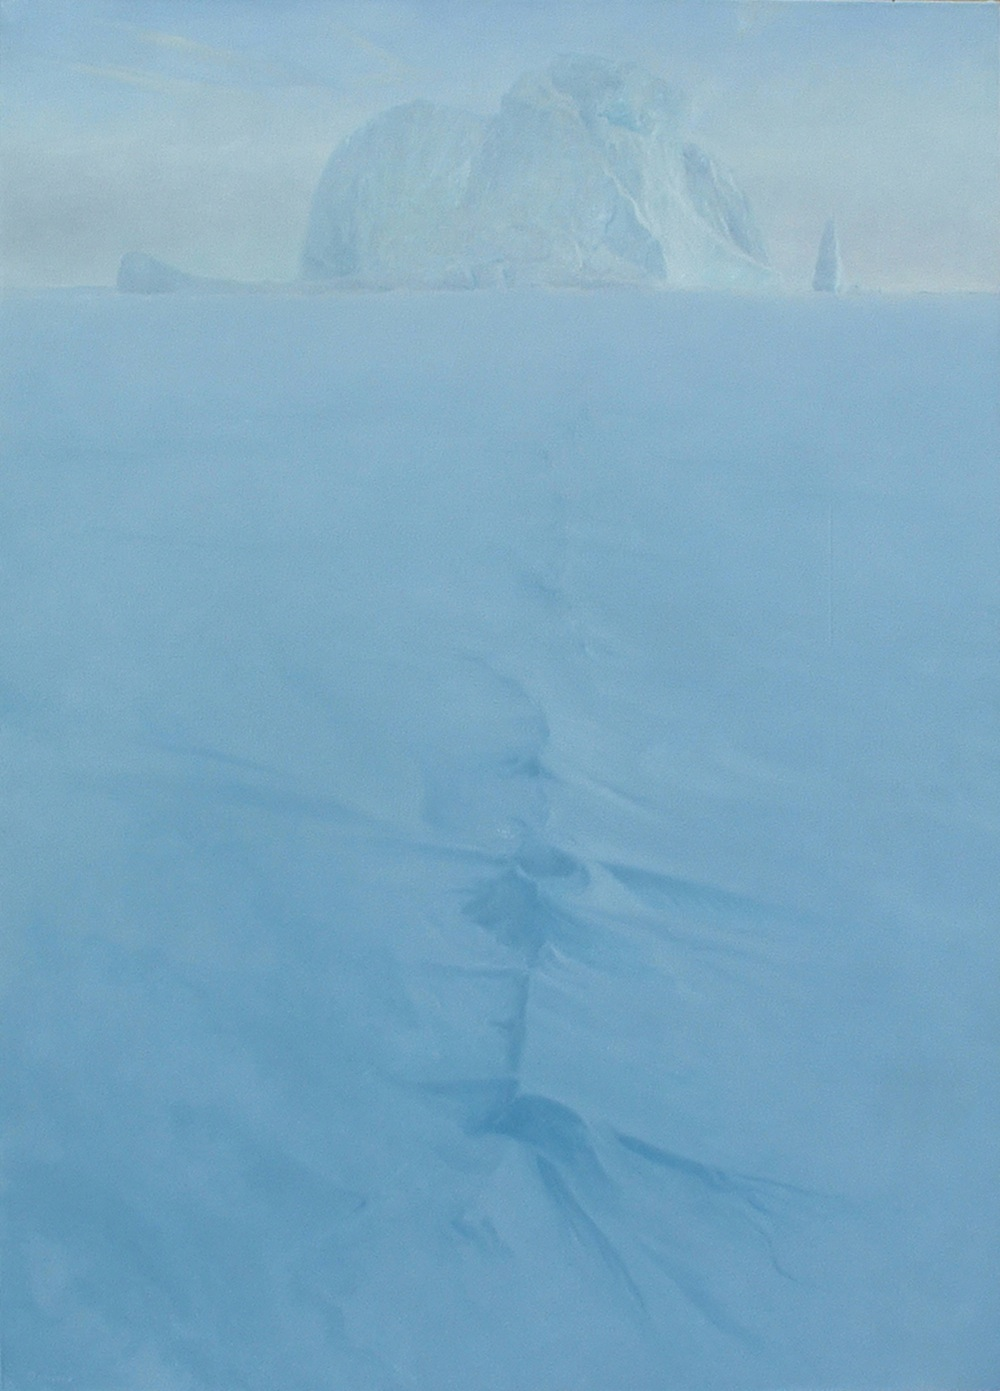 Trapped Berg,  152cm x 90cm, oil on canvas, 2004.